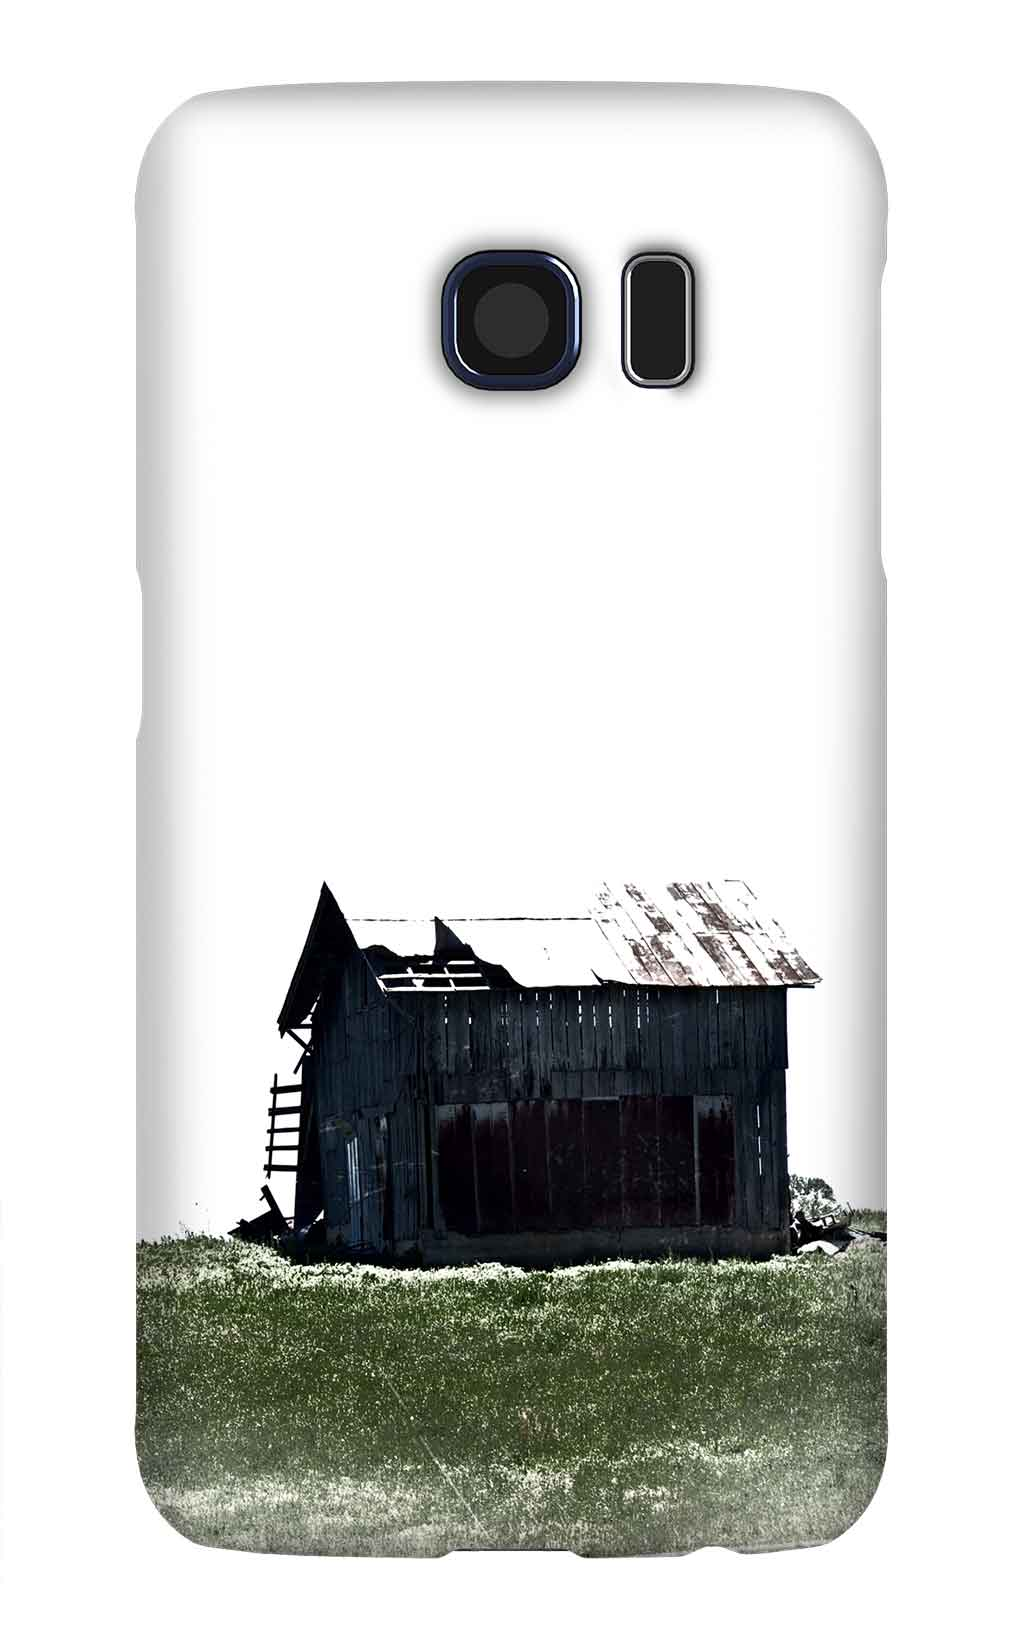 Product, Cellphone Case: Keeping Watch – Black barn with white roof and green grass